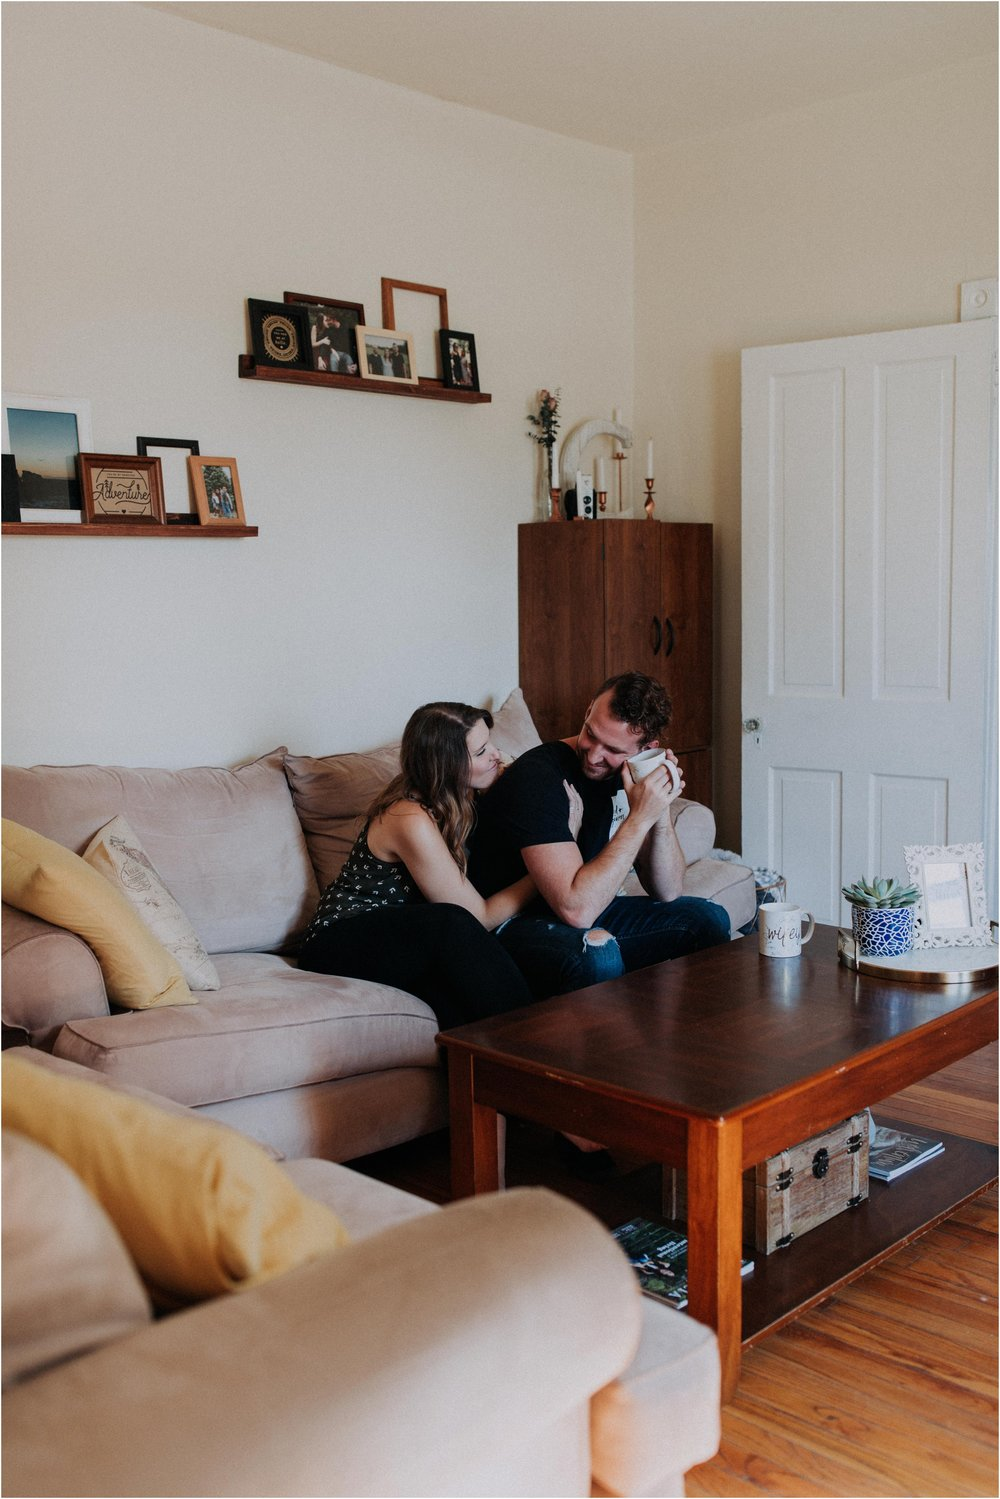 steph-reif-jordan-cox-in-home-lifestyle-engagement-session-hazel-lining-travel-wedding-elopement-photography_0068.jpg